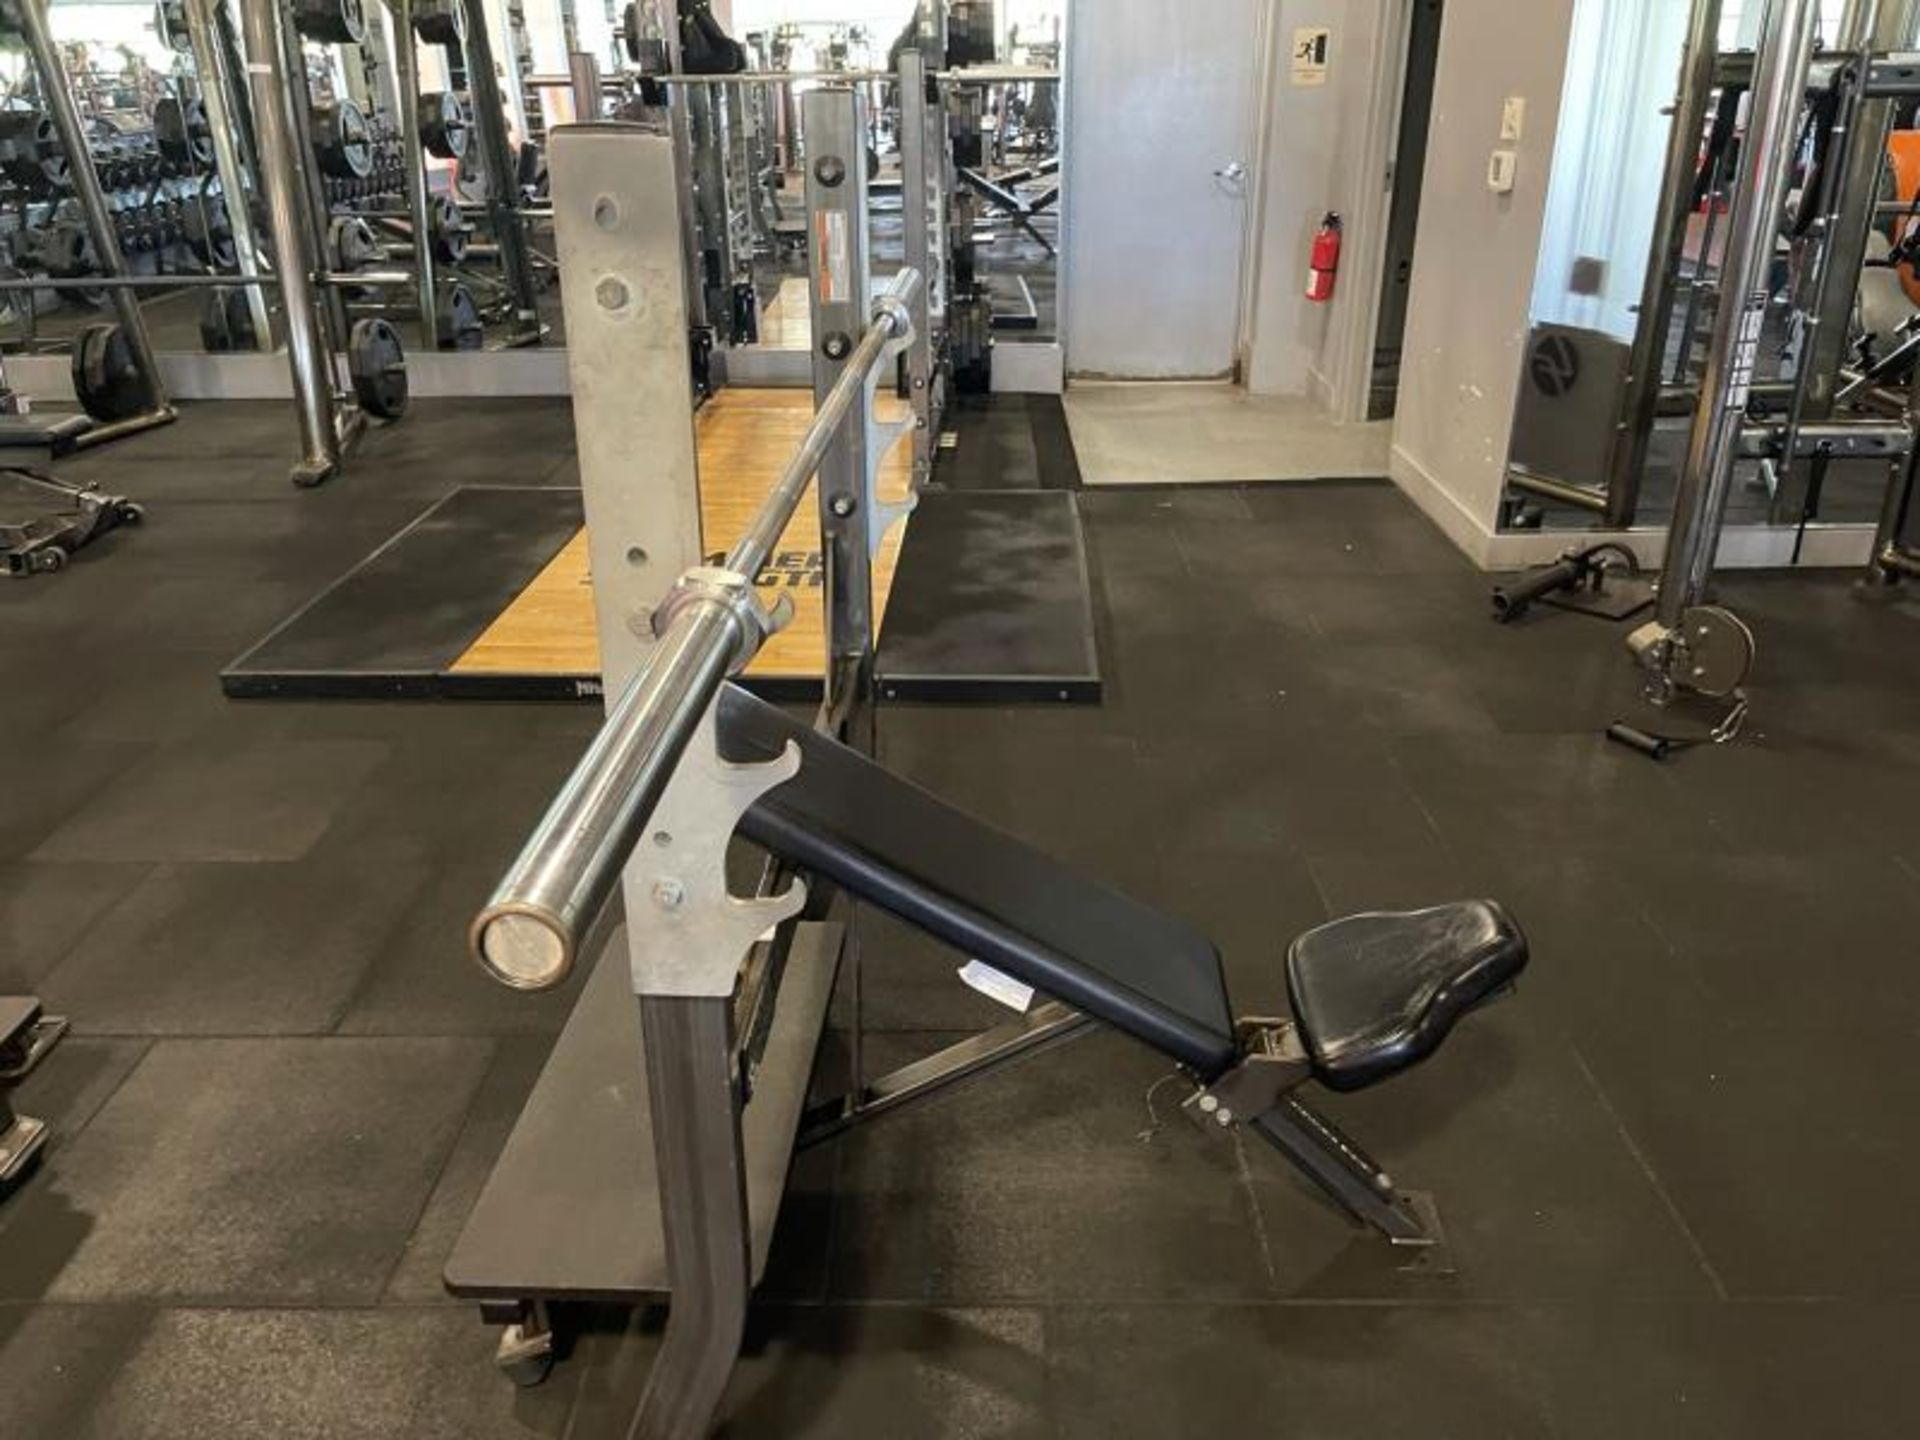 Hammer Strength with Bench, Rack, Bars - Image 5 of 5